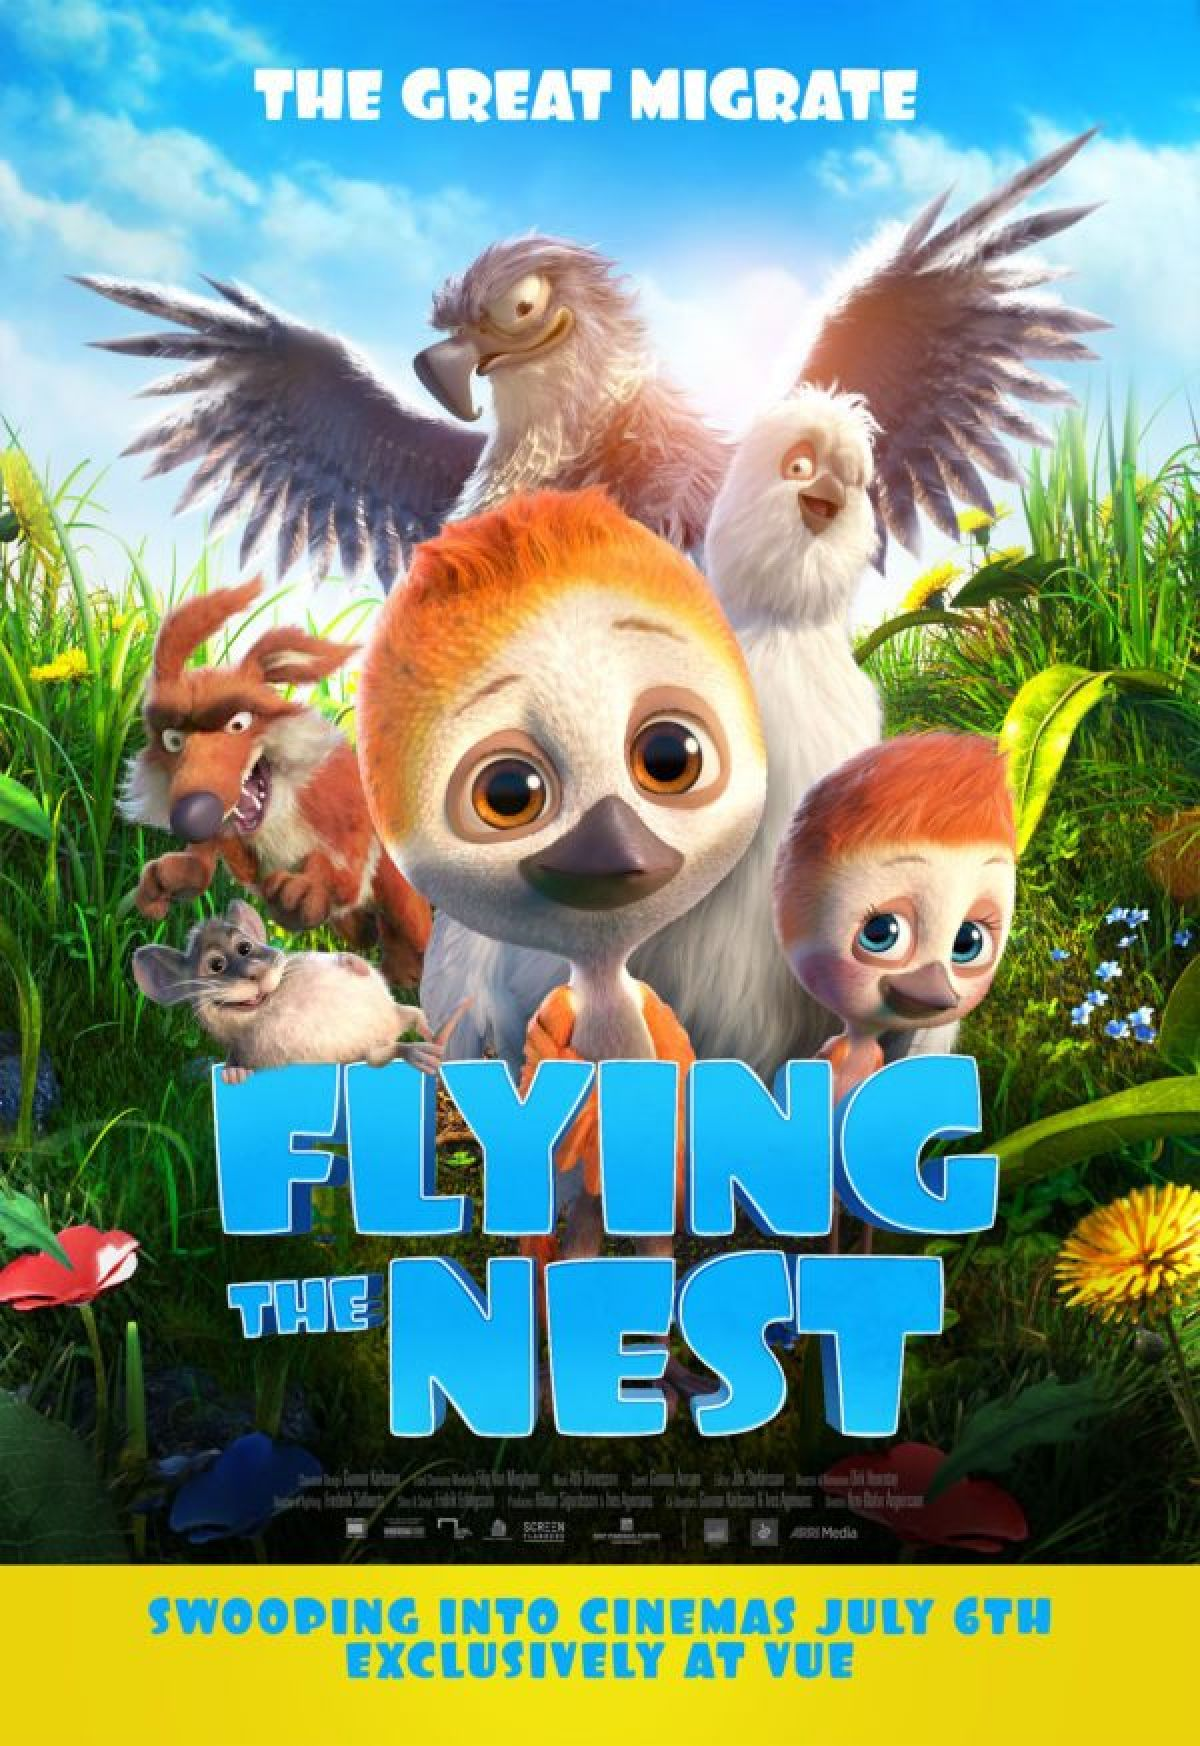 'Flying The Nest' movie poster